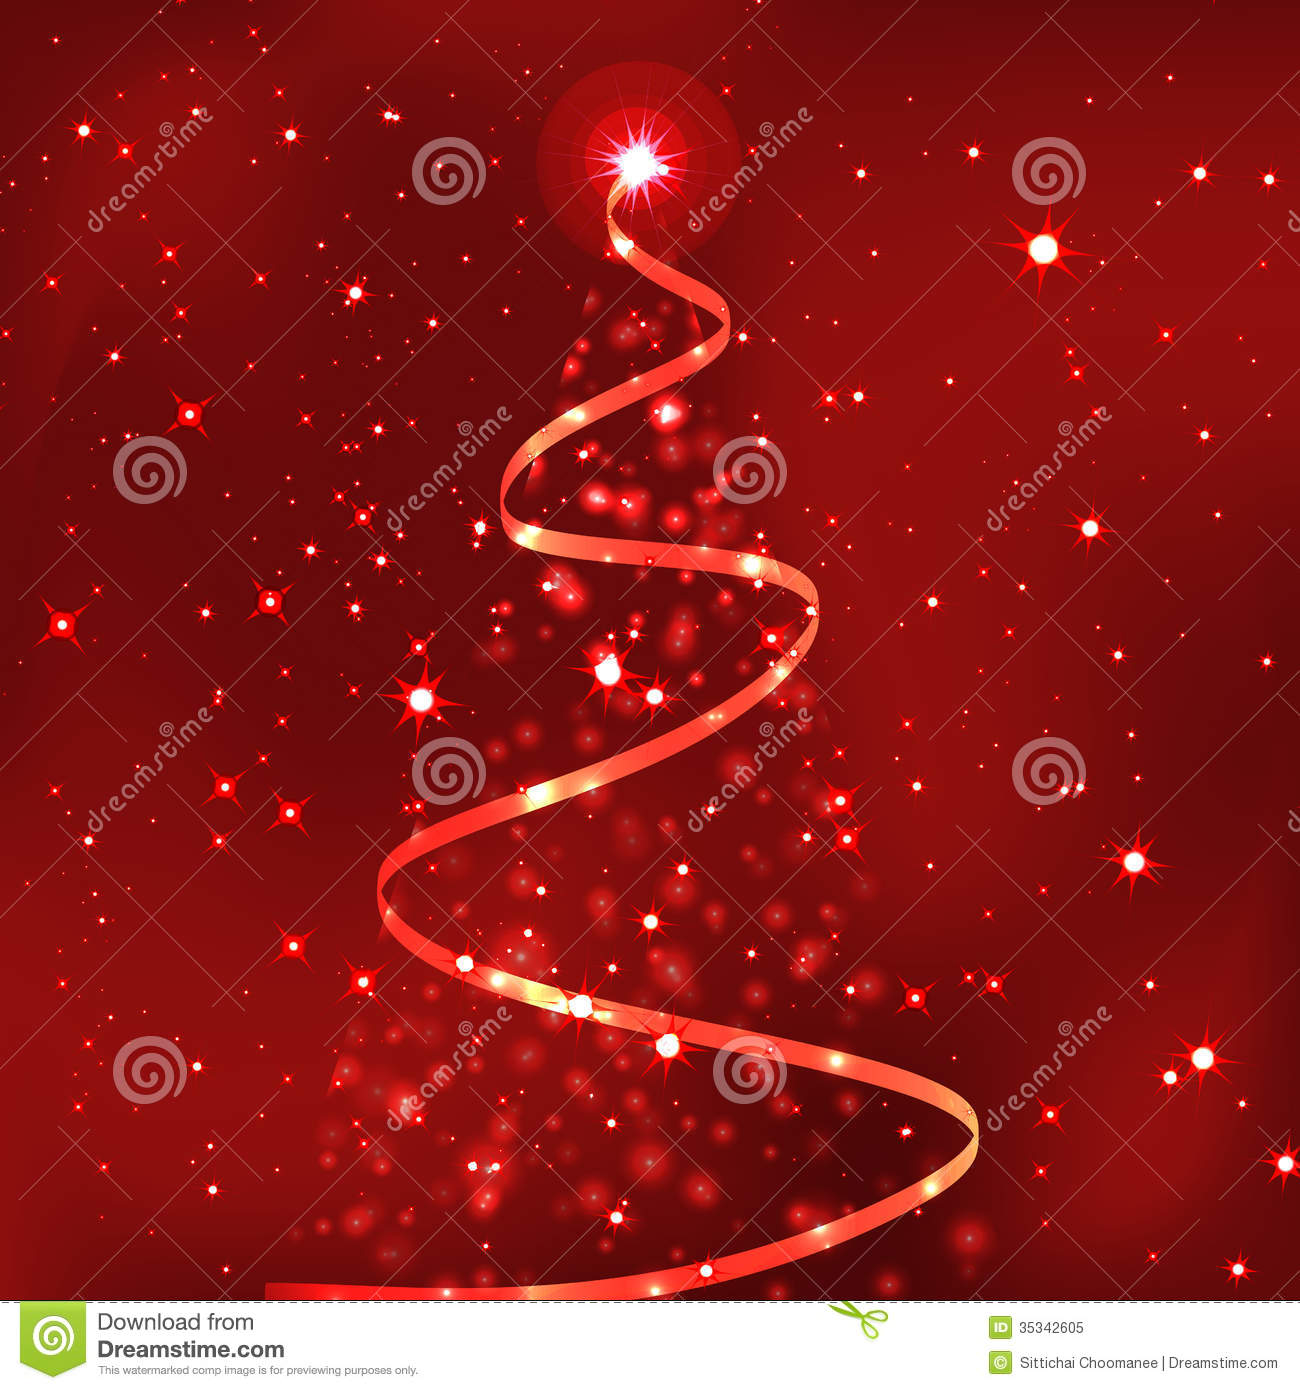 Most beautiful christmas trees royalty free stock photo for Most beautiful christmas photos